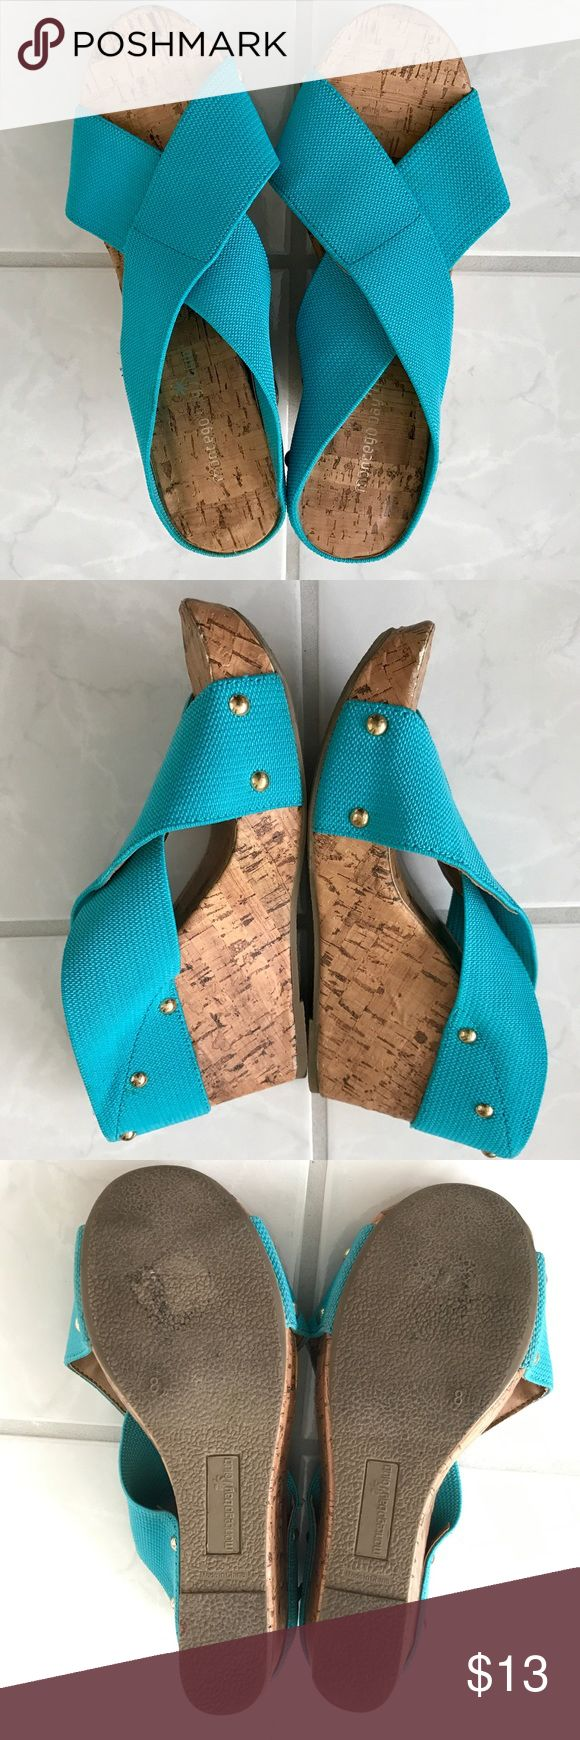 Teal wedges Teal wedge sandals. Add a fun pop of color to any outfit! The top is a stretchy material to keep your feet from sliding around. Good used condition, some wear on front toe area pictured. Montego Bay Club Shoes Wedges